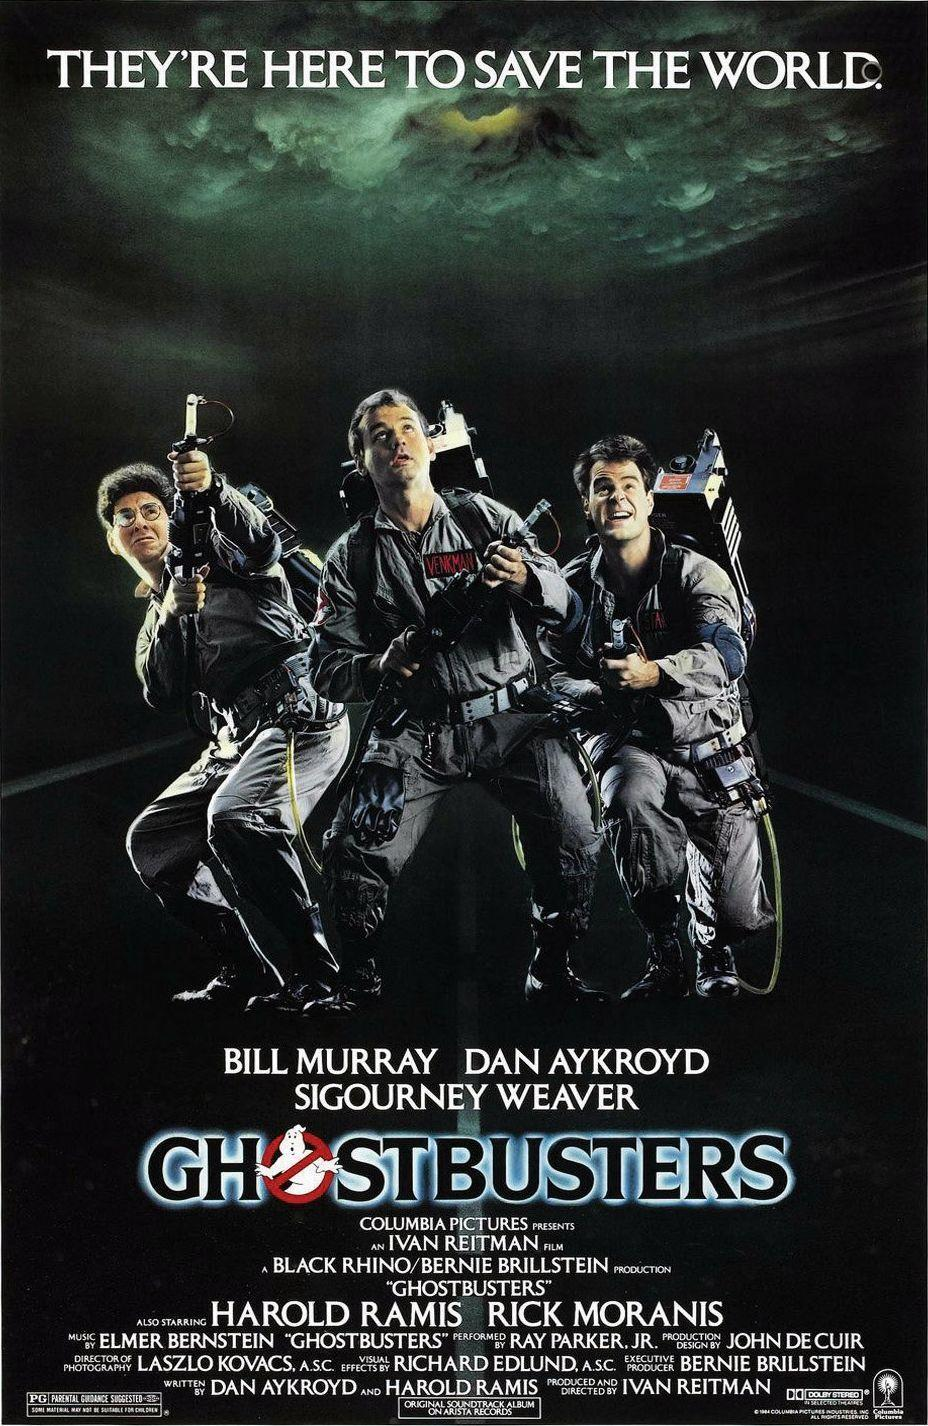 """<p>After losing their research grants, Ego, Ray, and Peter, open Ghostbusters and soon find themselves investigating the possession and abduction of a woman that Peter is interested in. And, if you finish this movie and want more, there's always the remake!</p><p><a class=""""link rapid-noclick-resp"""" href=""""https://www.amazon.com/Ghostbusters-Bill-Murray/dp/B008Y70TMK/?tag=syn-yahoo-20&ascsubtag=%5Bartid%7C10065.g.29354714%5Bsrc%7Cyahoo-us"""" rel=""""nofollow noopener"""" target=""""_blank"""" data-ylk=""""slk:Watch Now"""">Watch Now</a></p>"""